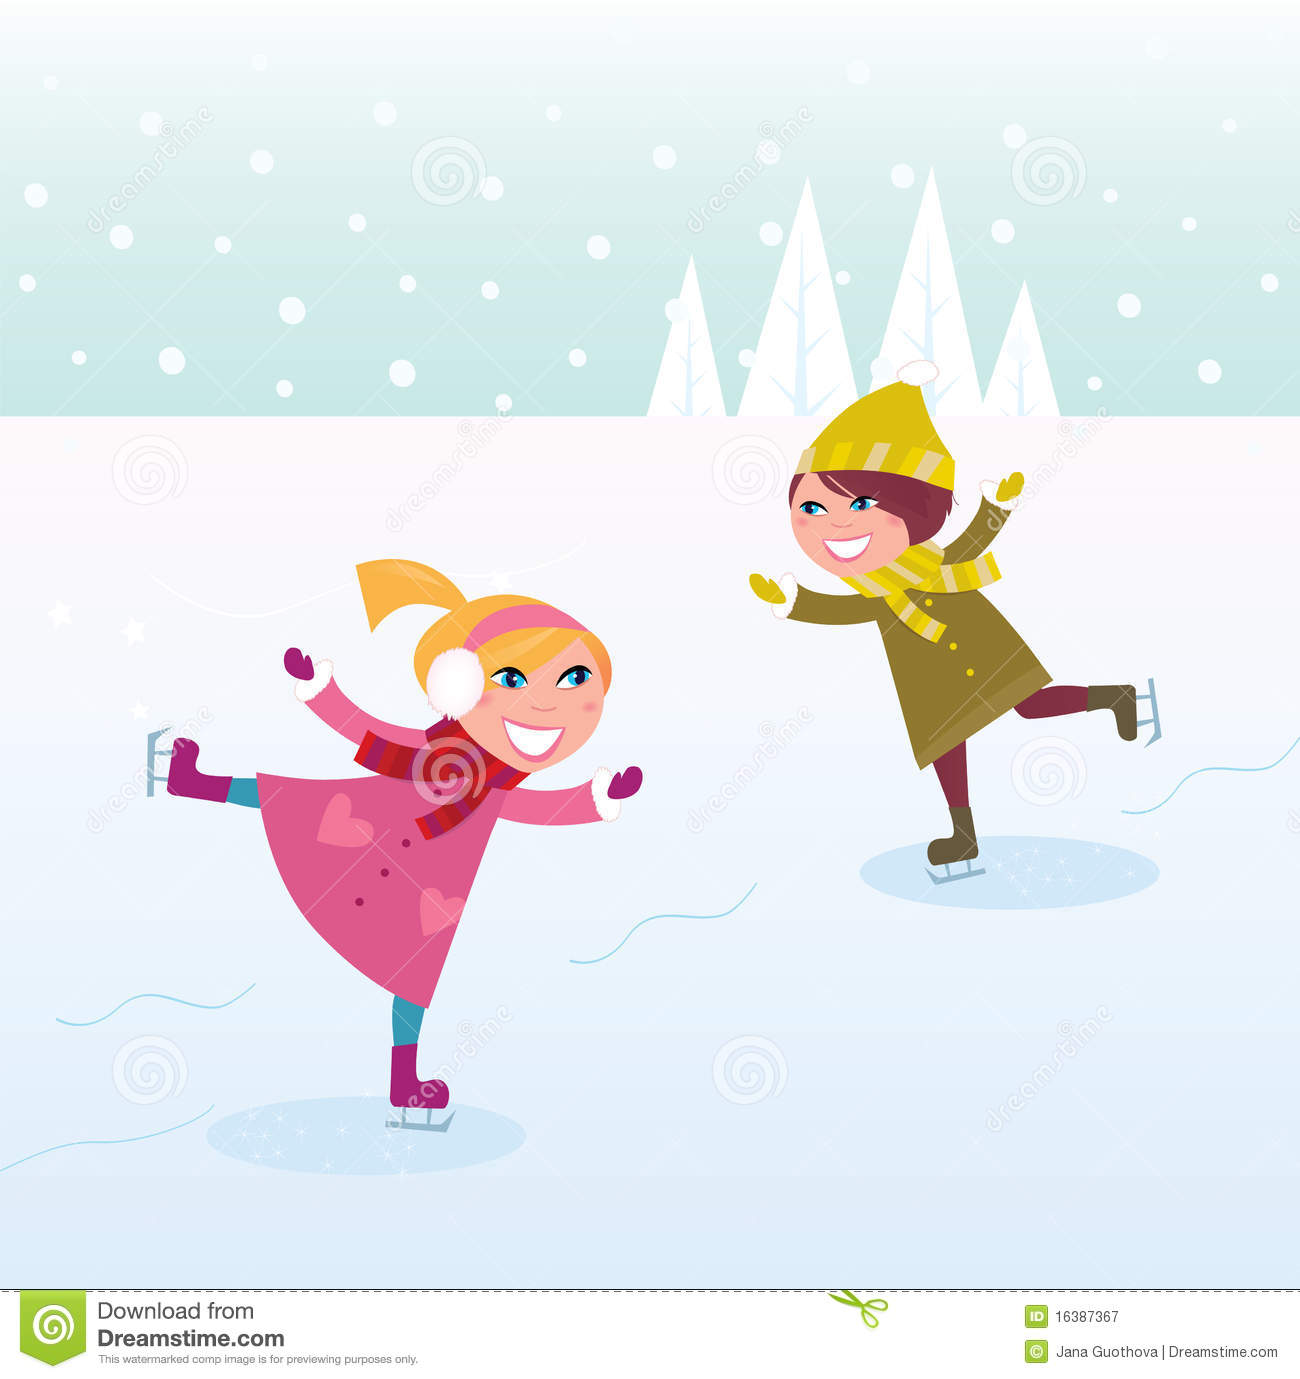 Figurine clipart figure skater Free skating And clipart Skating